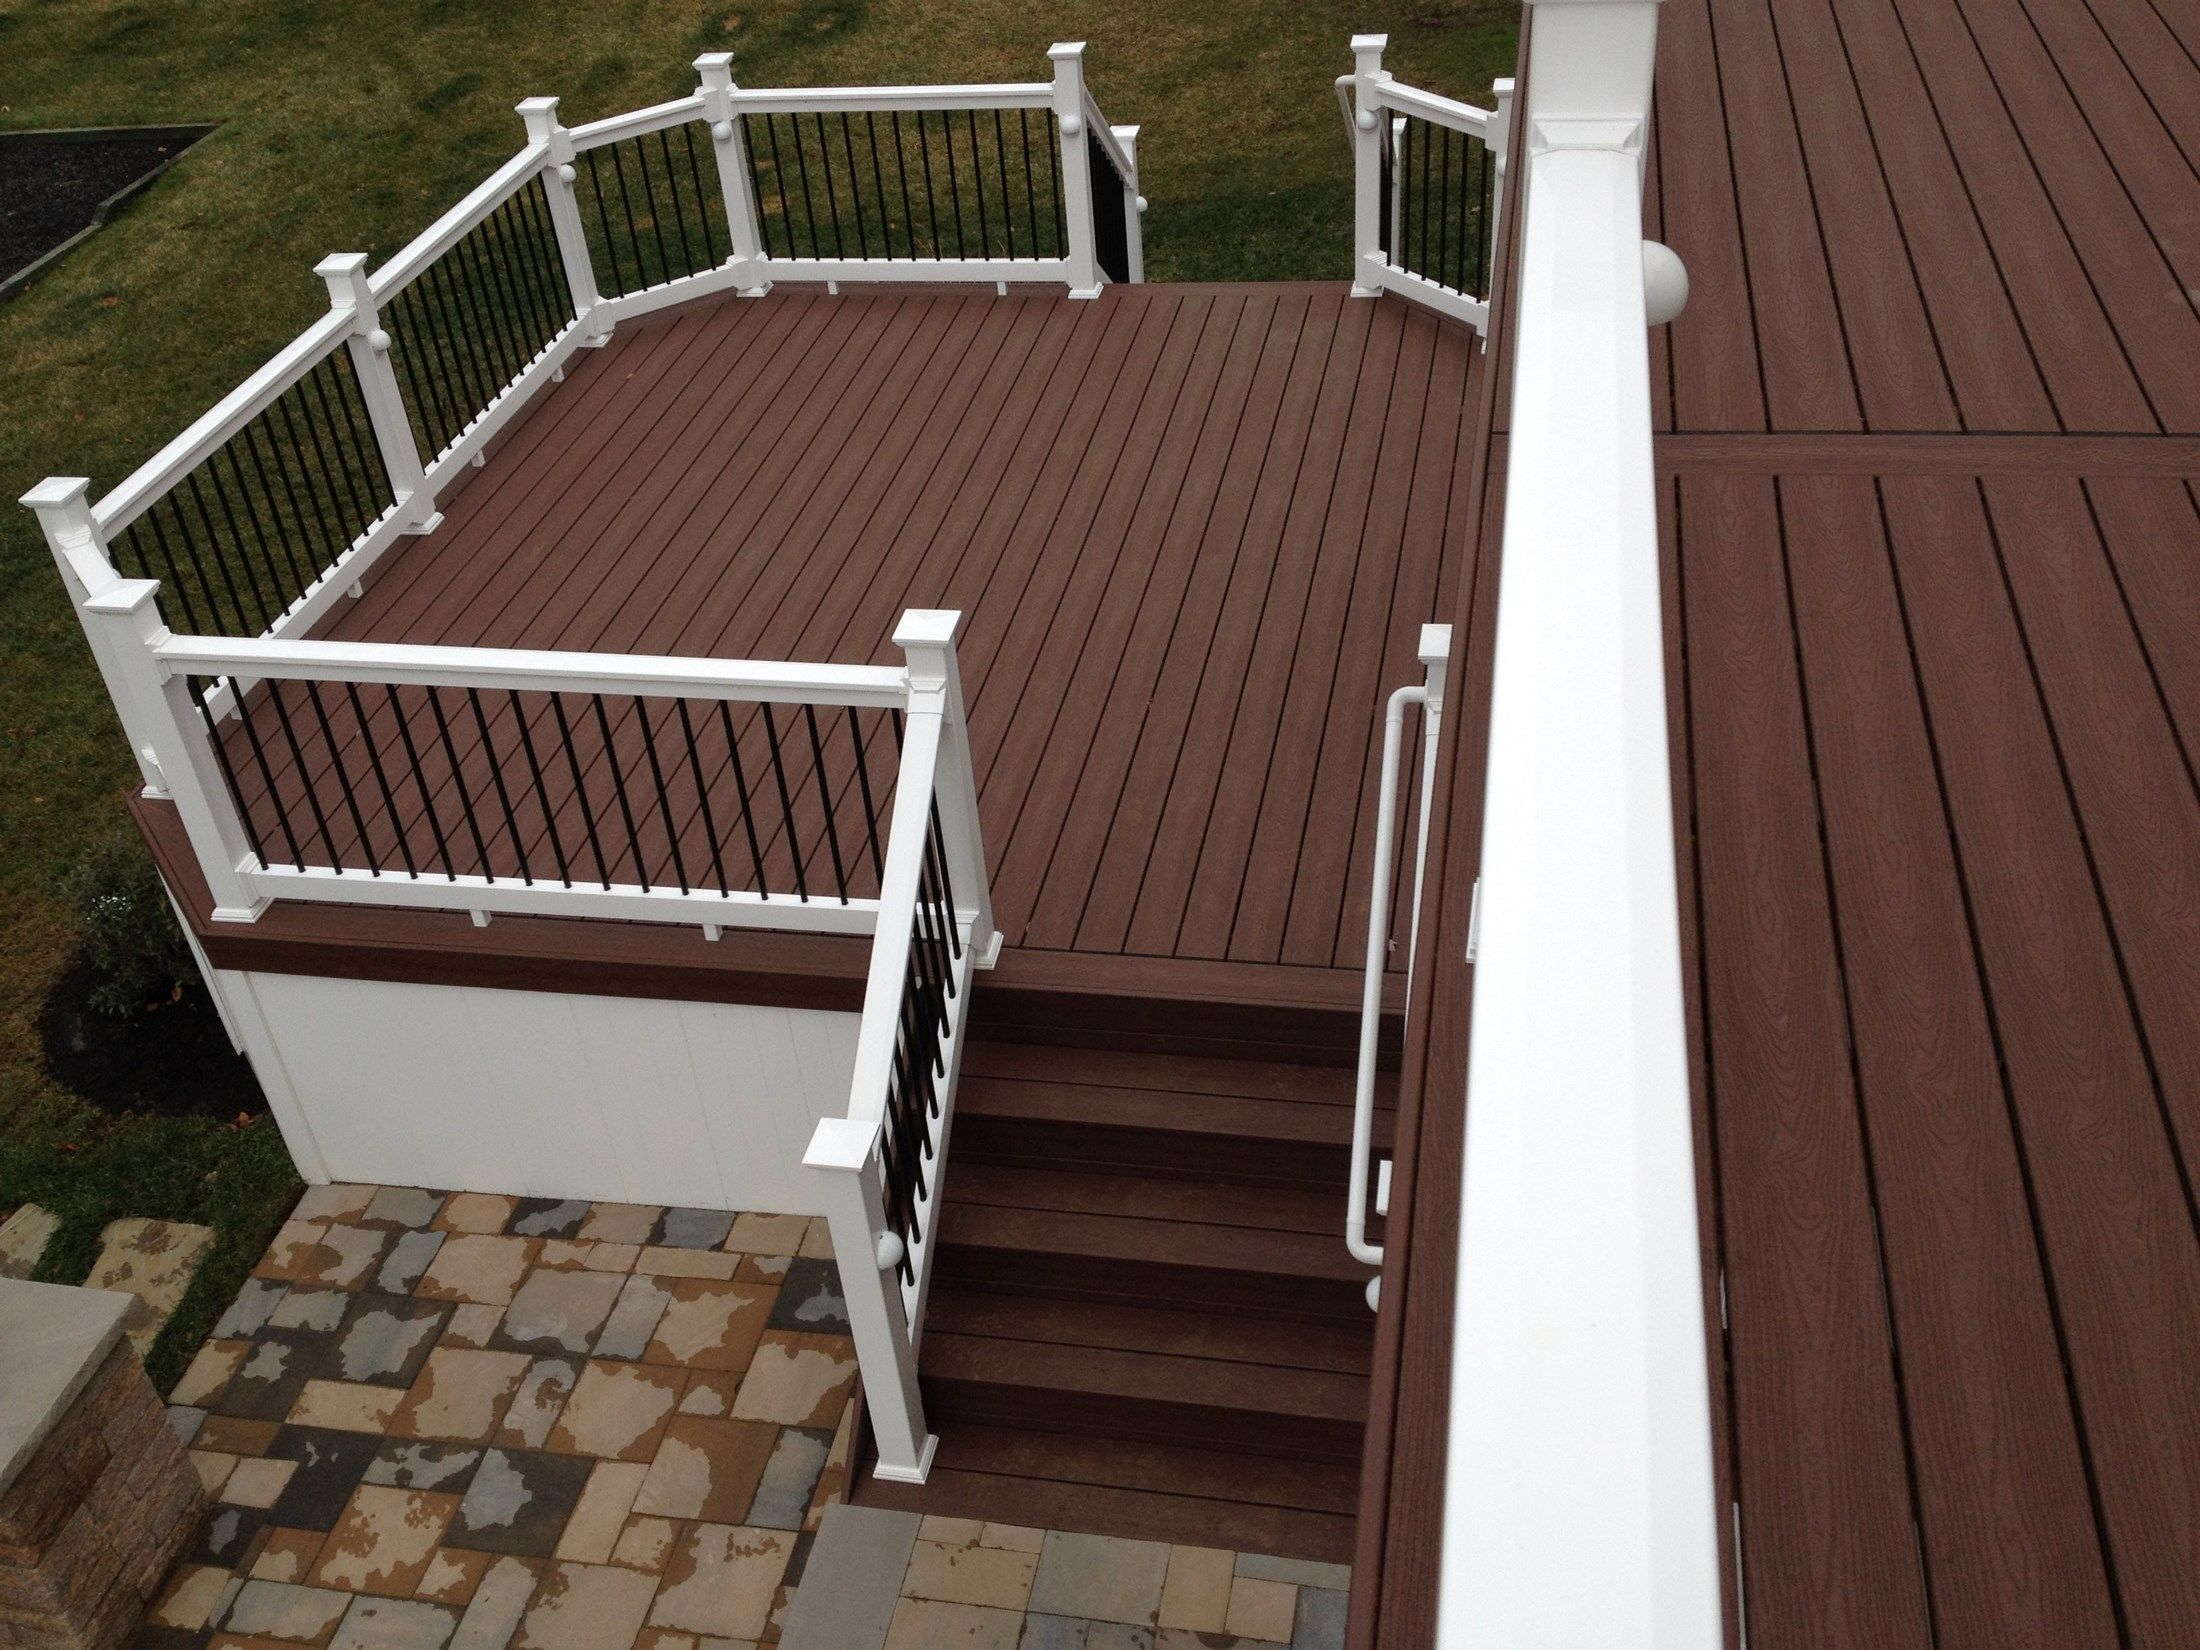 Custom deck in Manalapan NJ - Picture 3242